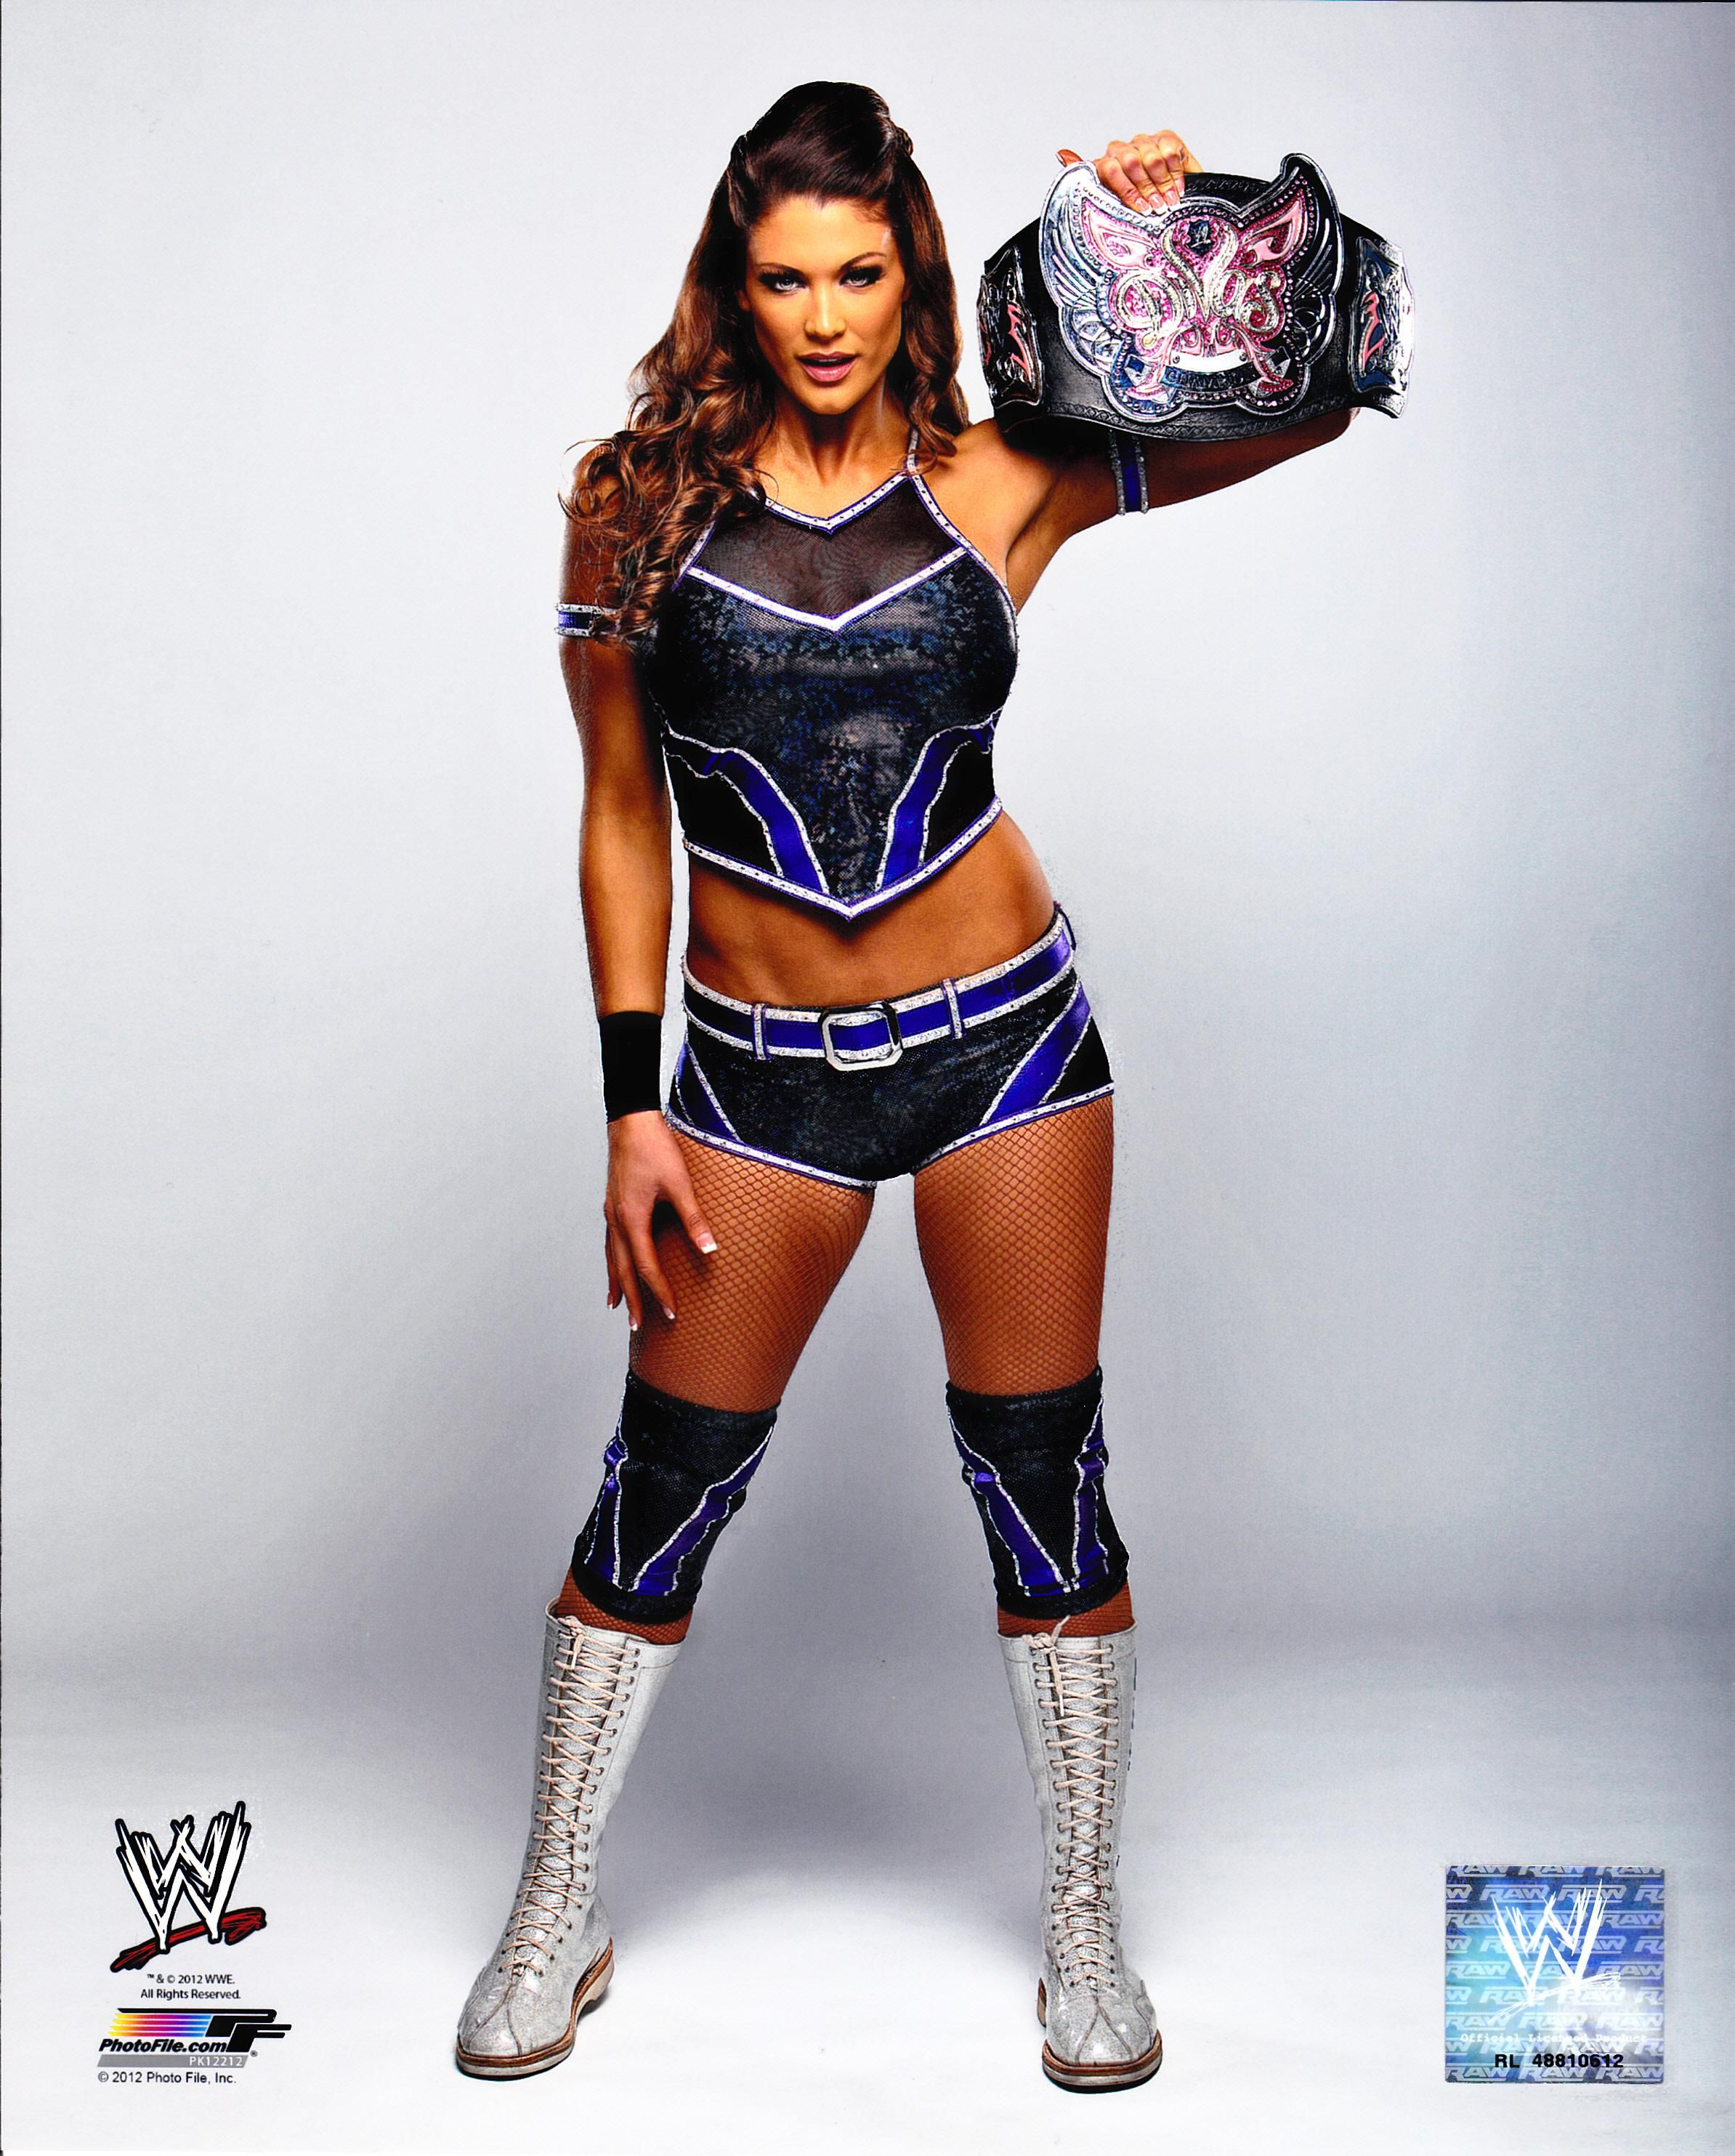 eve torres fight scene